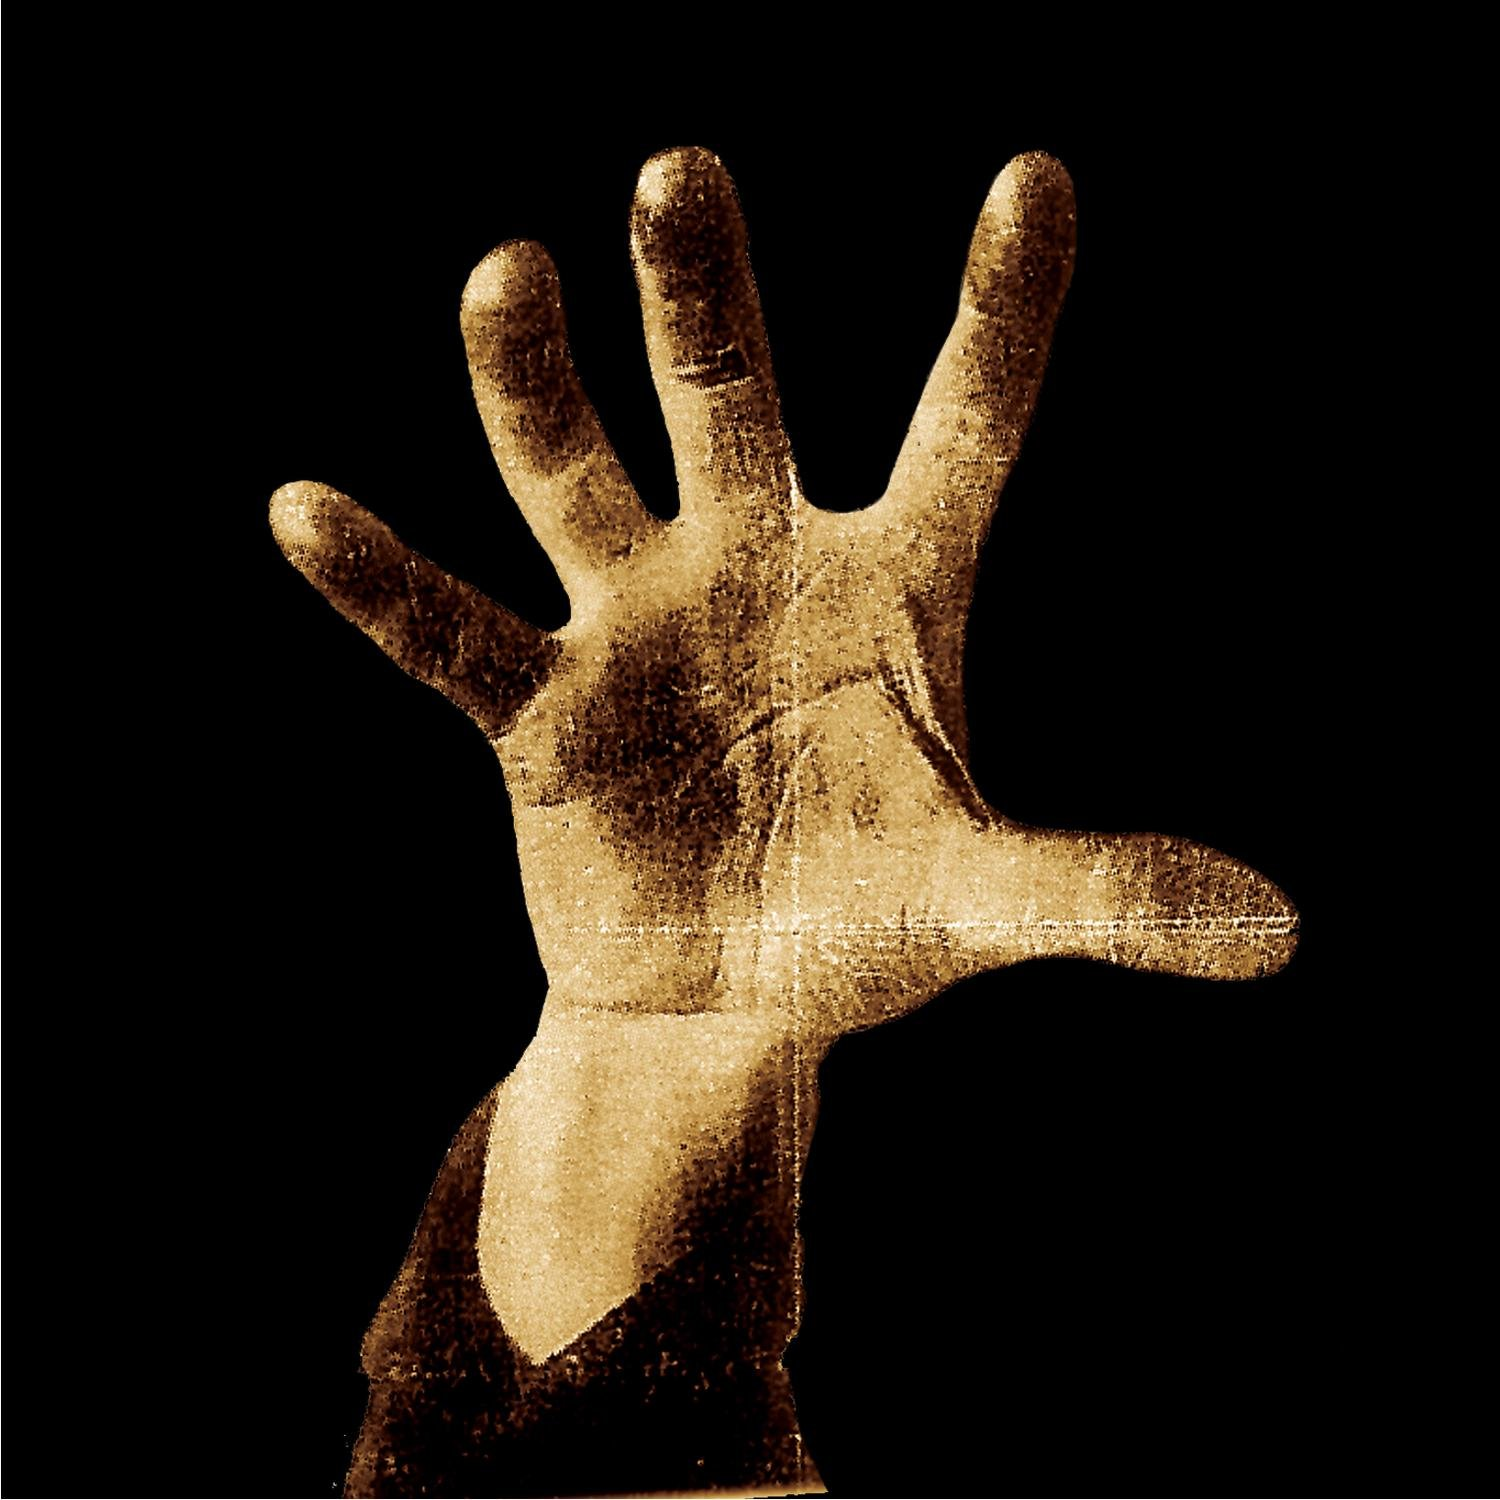 CD : System of a Down - System of a Down [Explicit Content] (CD)